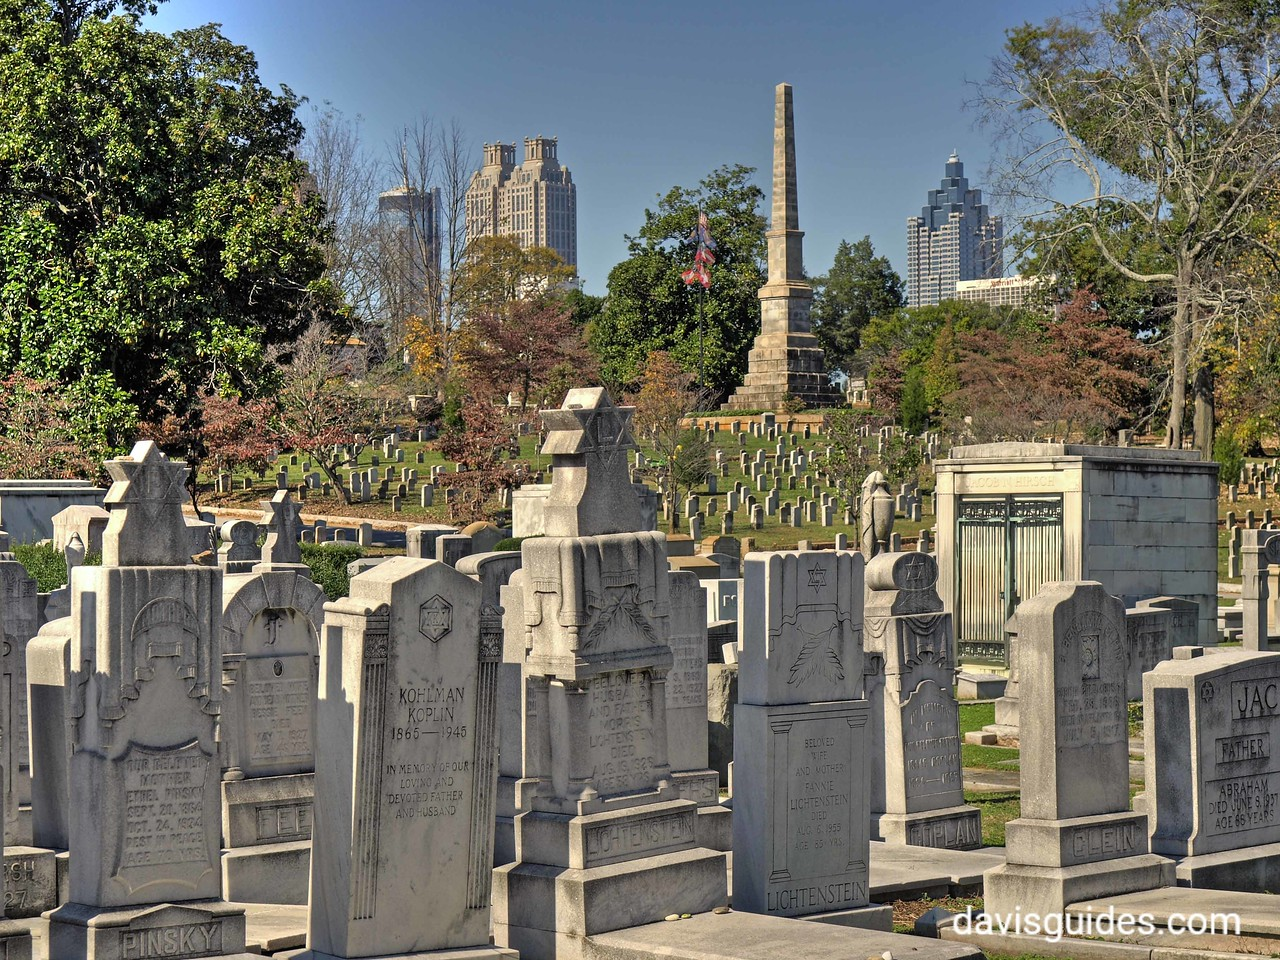 Jewsish section of Oakland Cemetery, Atlanta